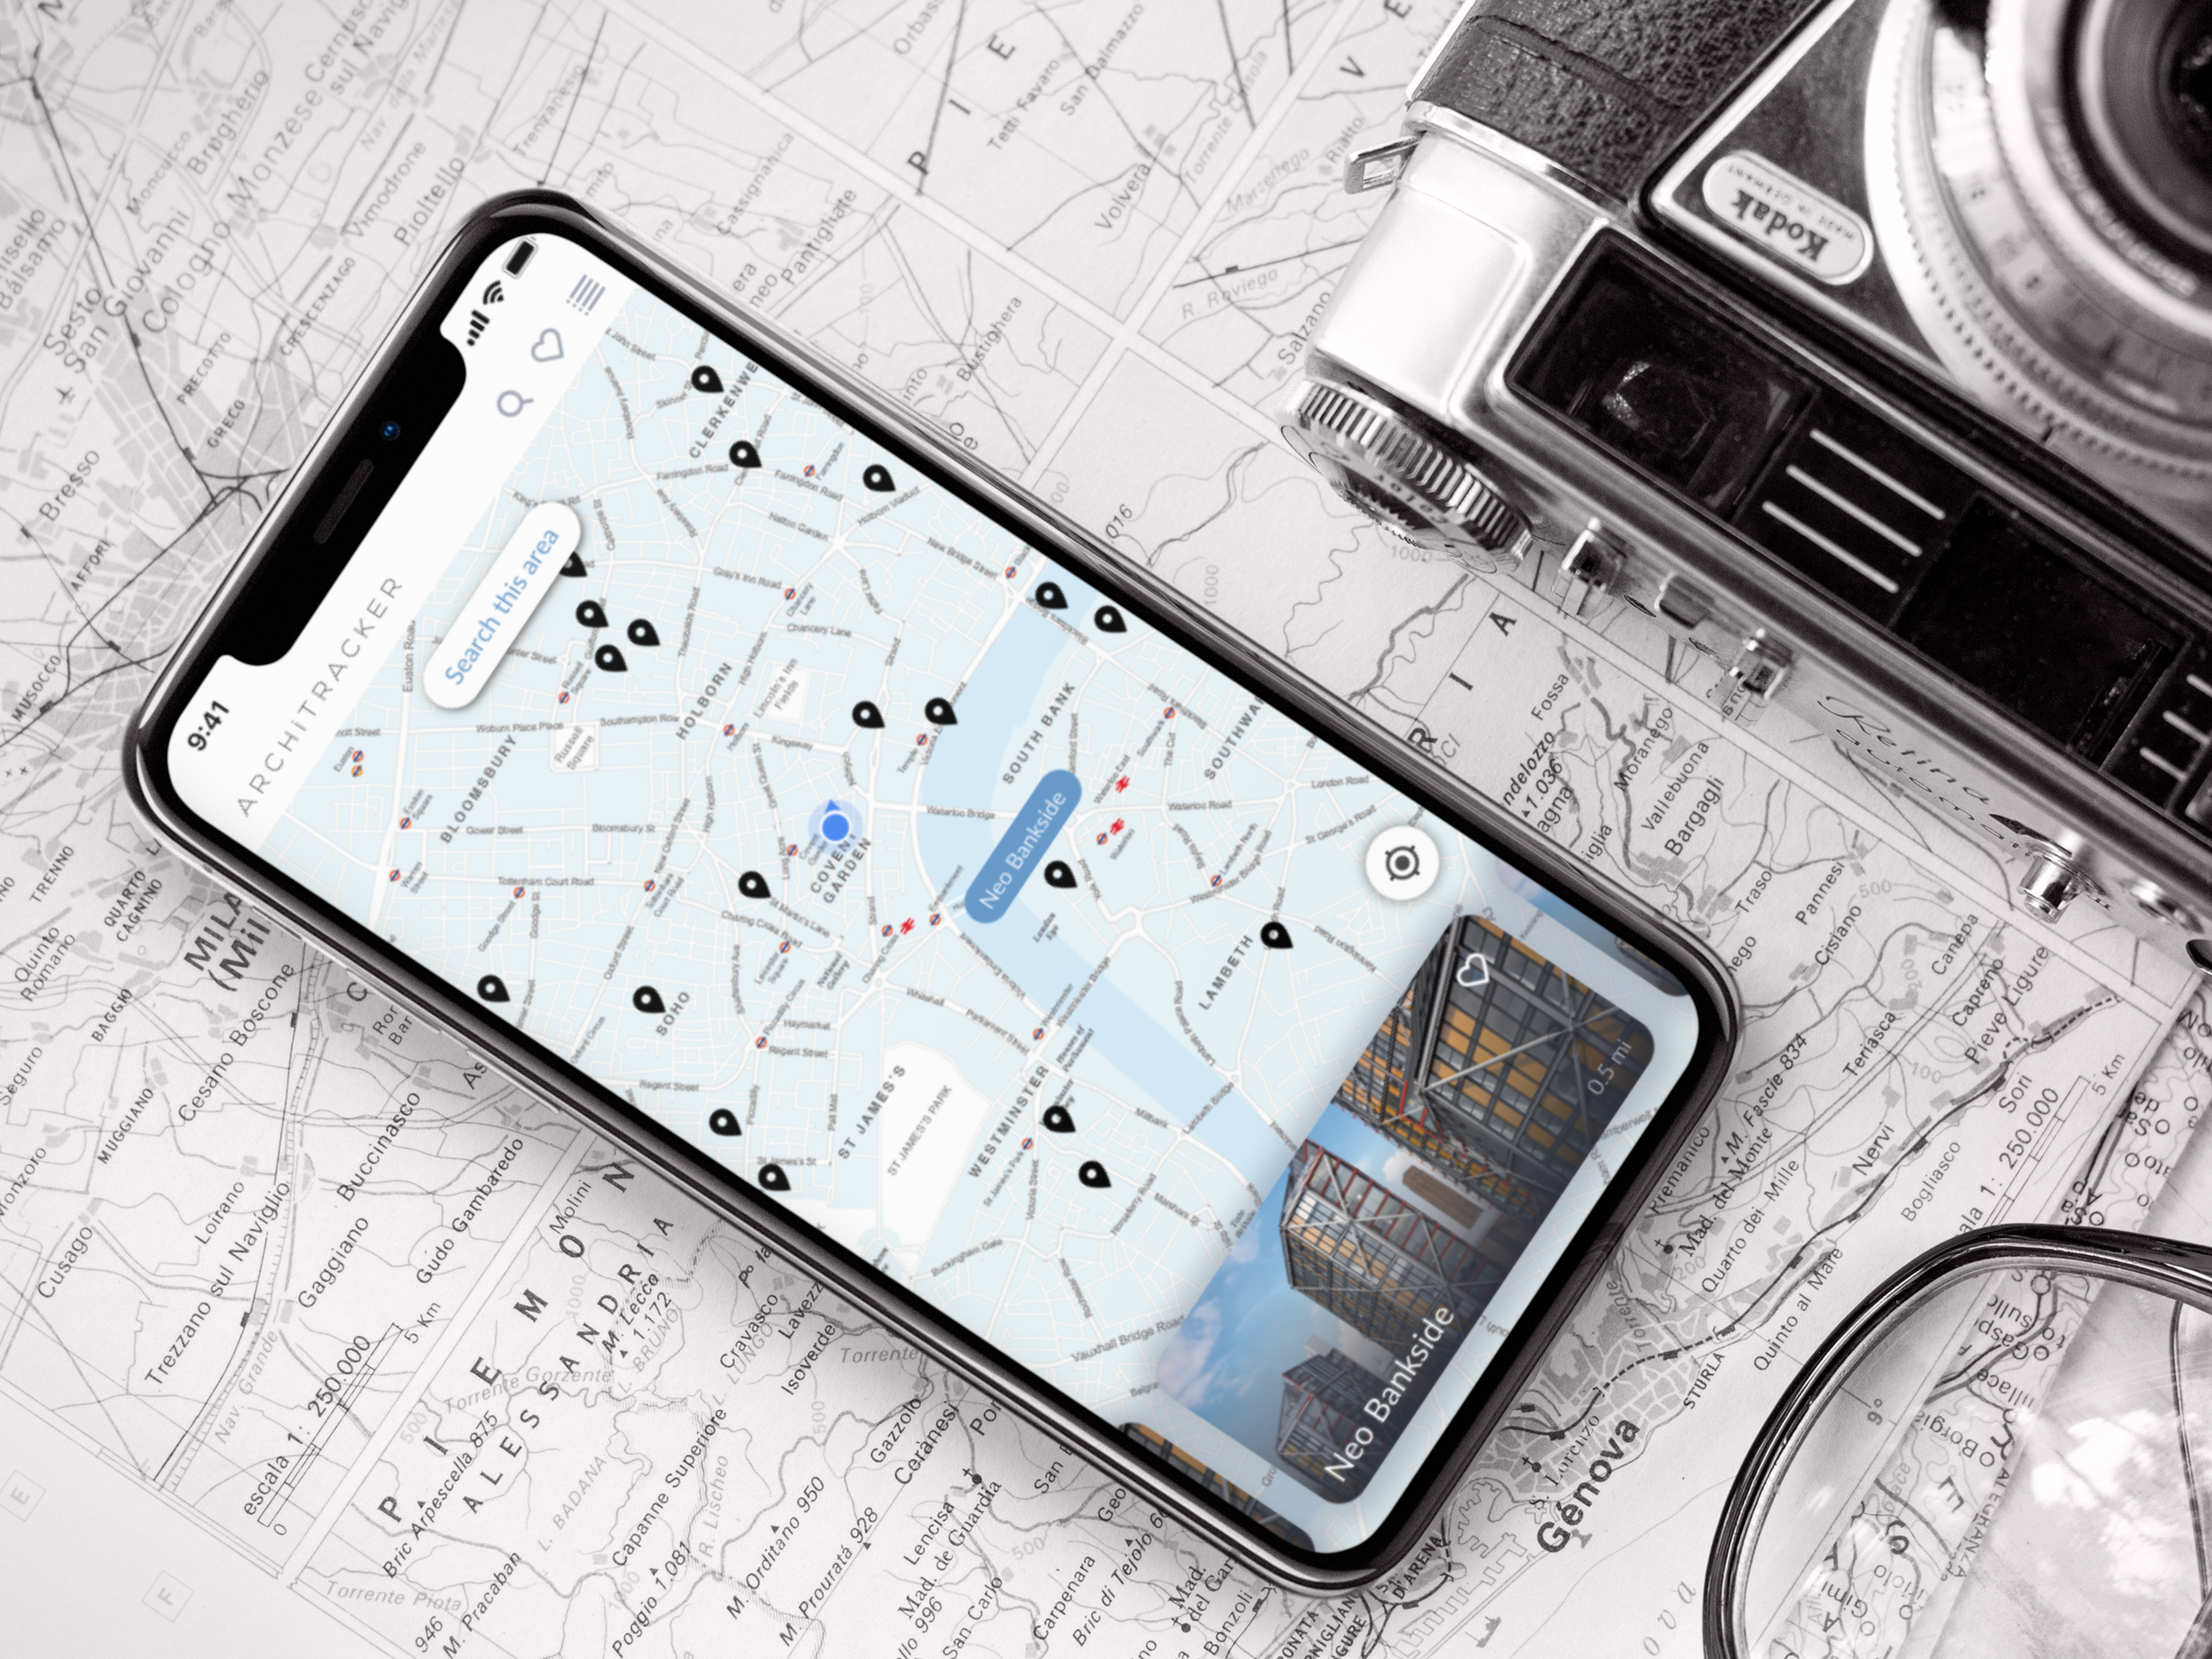 iphone-x-mockup-lying-on-a-map-next-to-a-vintage-camera-a17501.png